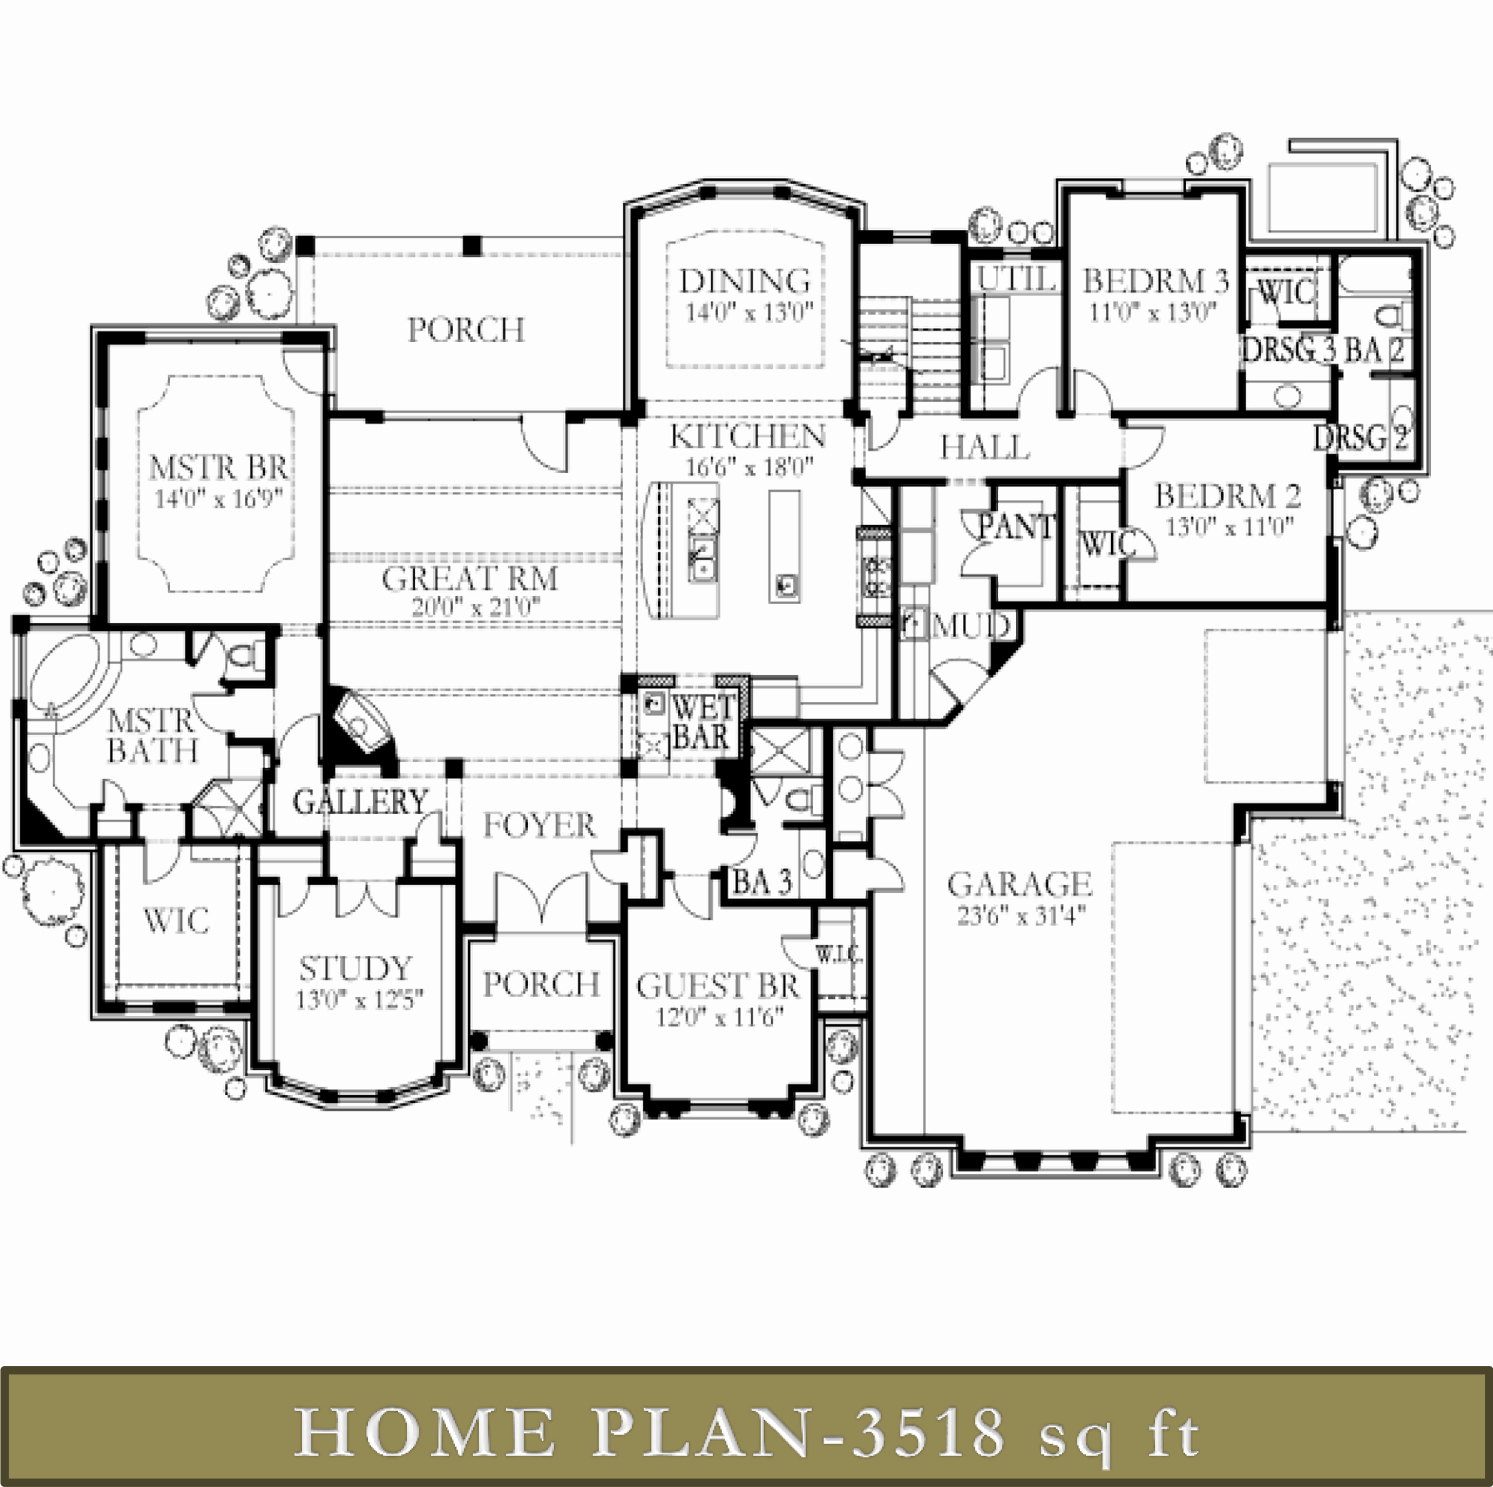 3500 4000 sq ft homes glazier homes for 4000 sq ft floor plans